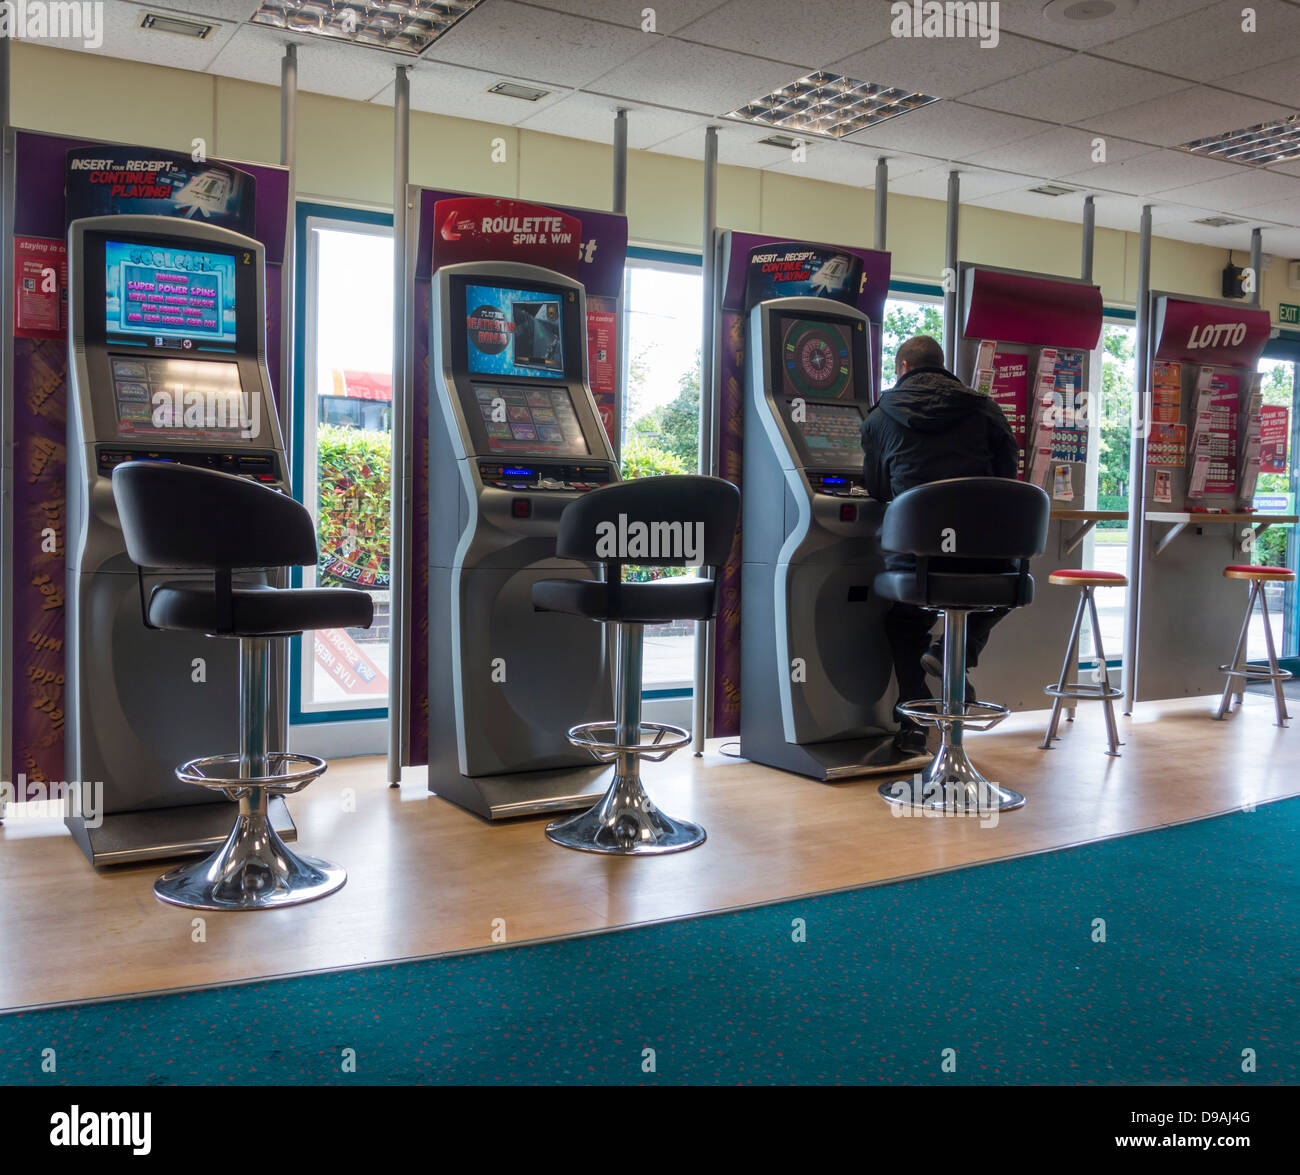 Are betting shop roulette machines fixed betting slip checkered